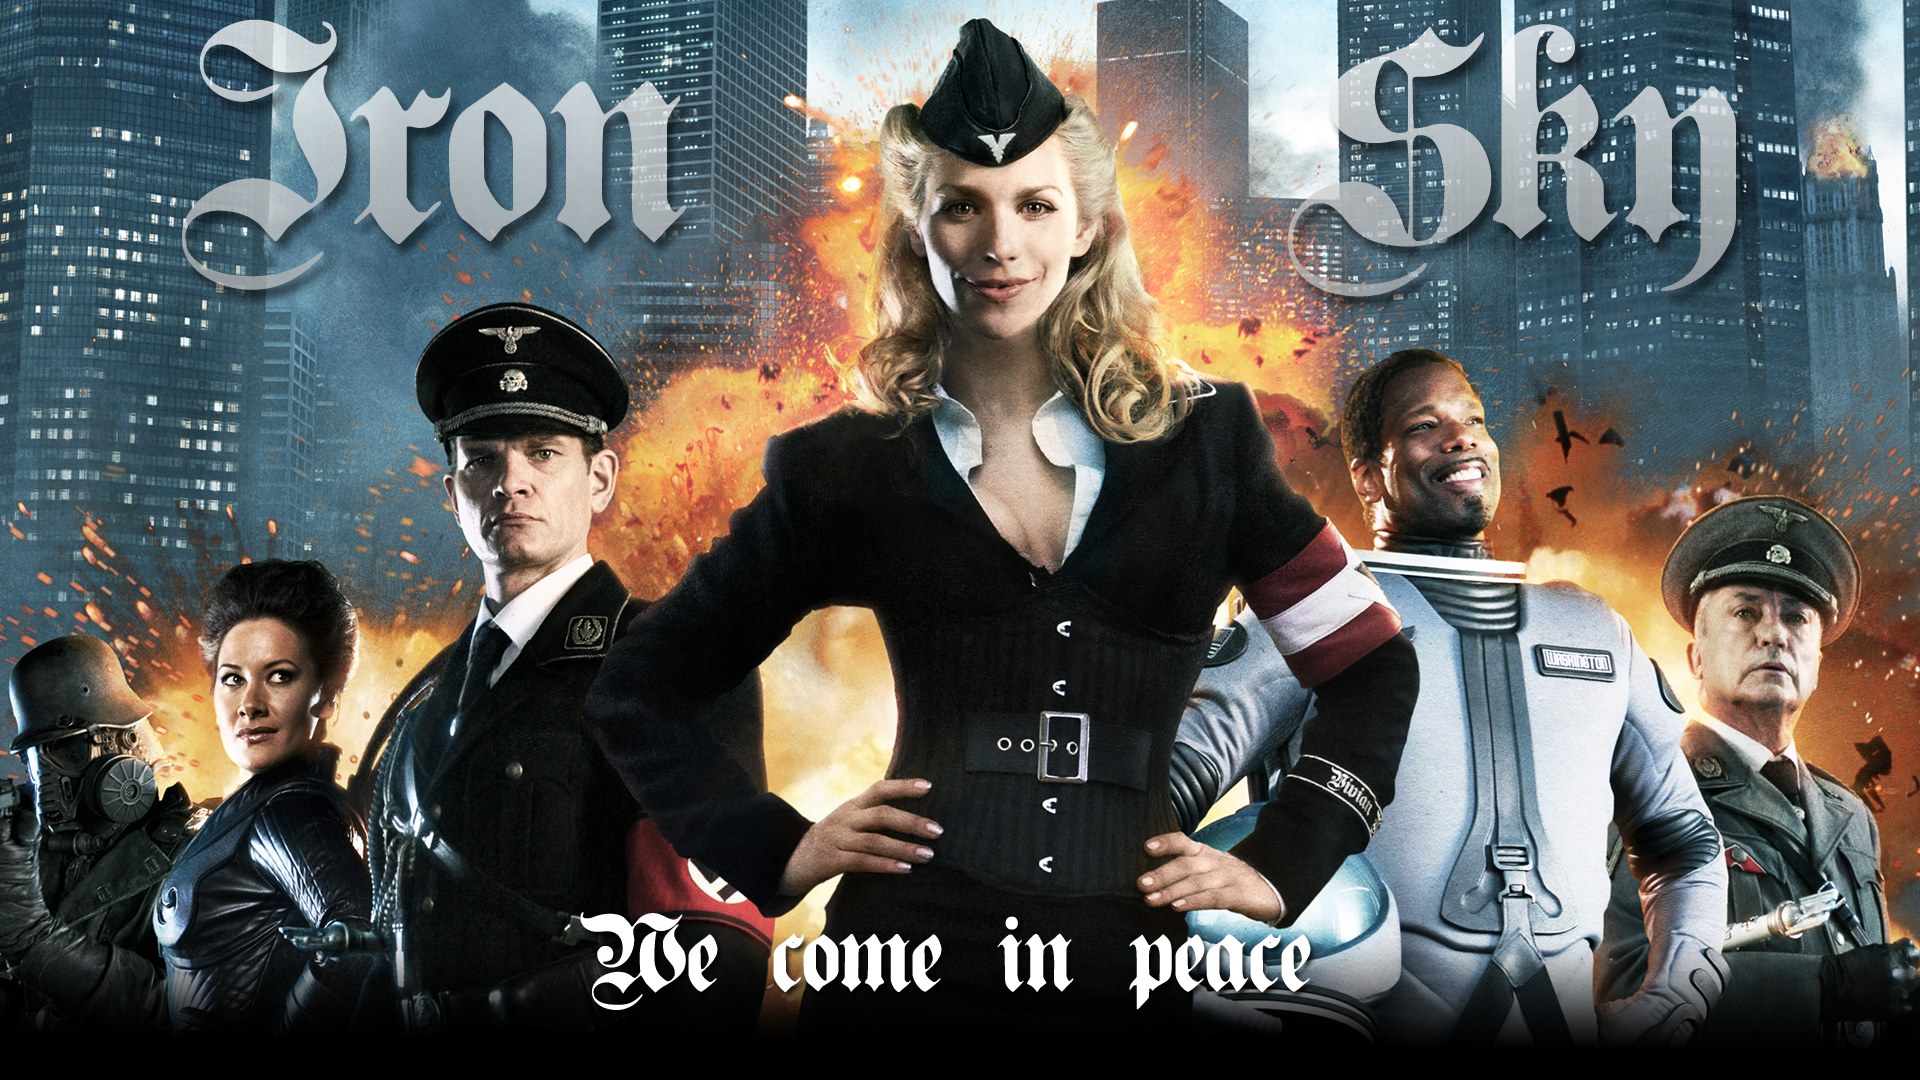 iron sky soundtrack ending relationship